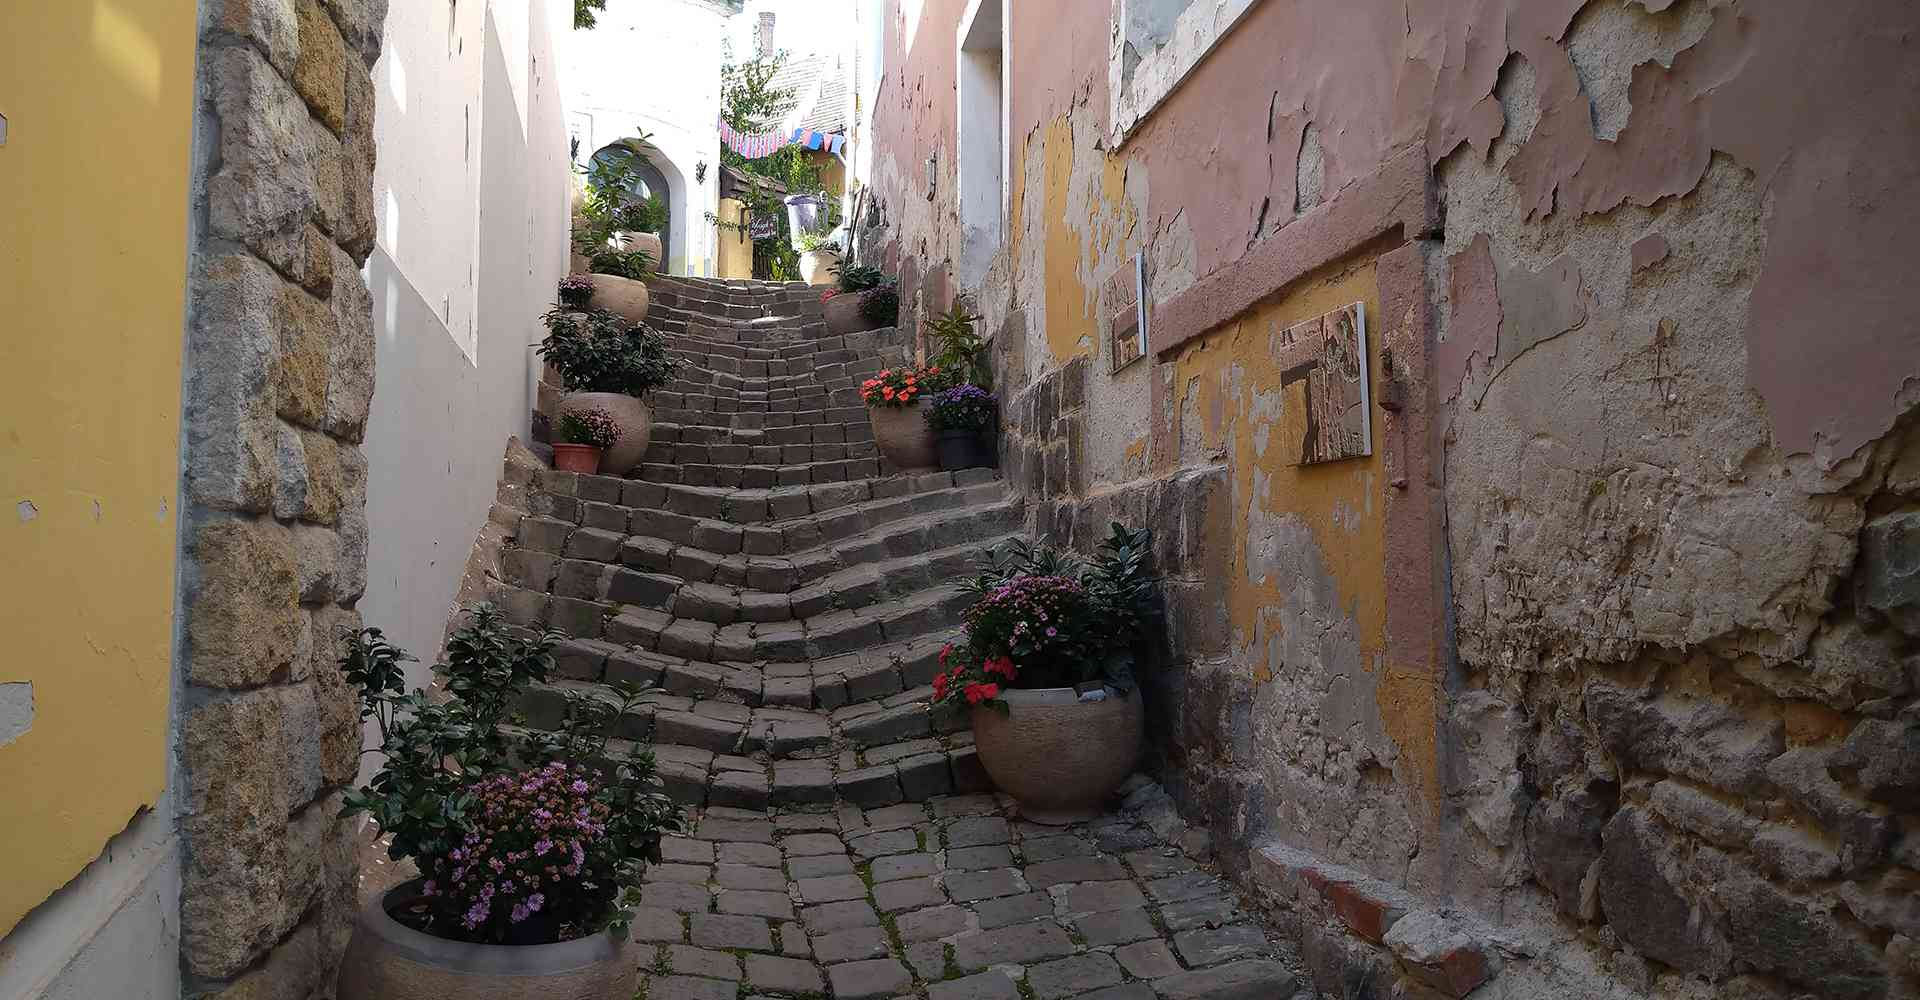 Szentendre_Őri-Art_Gallery_S5-Alley_of_Flowers